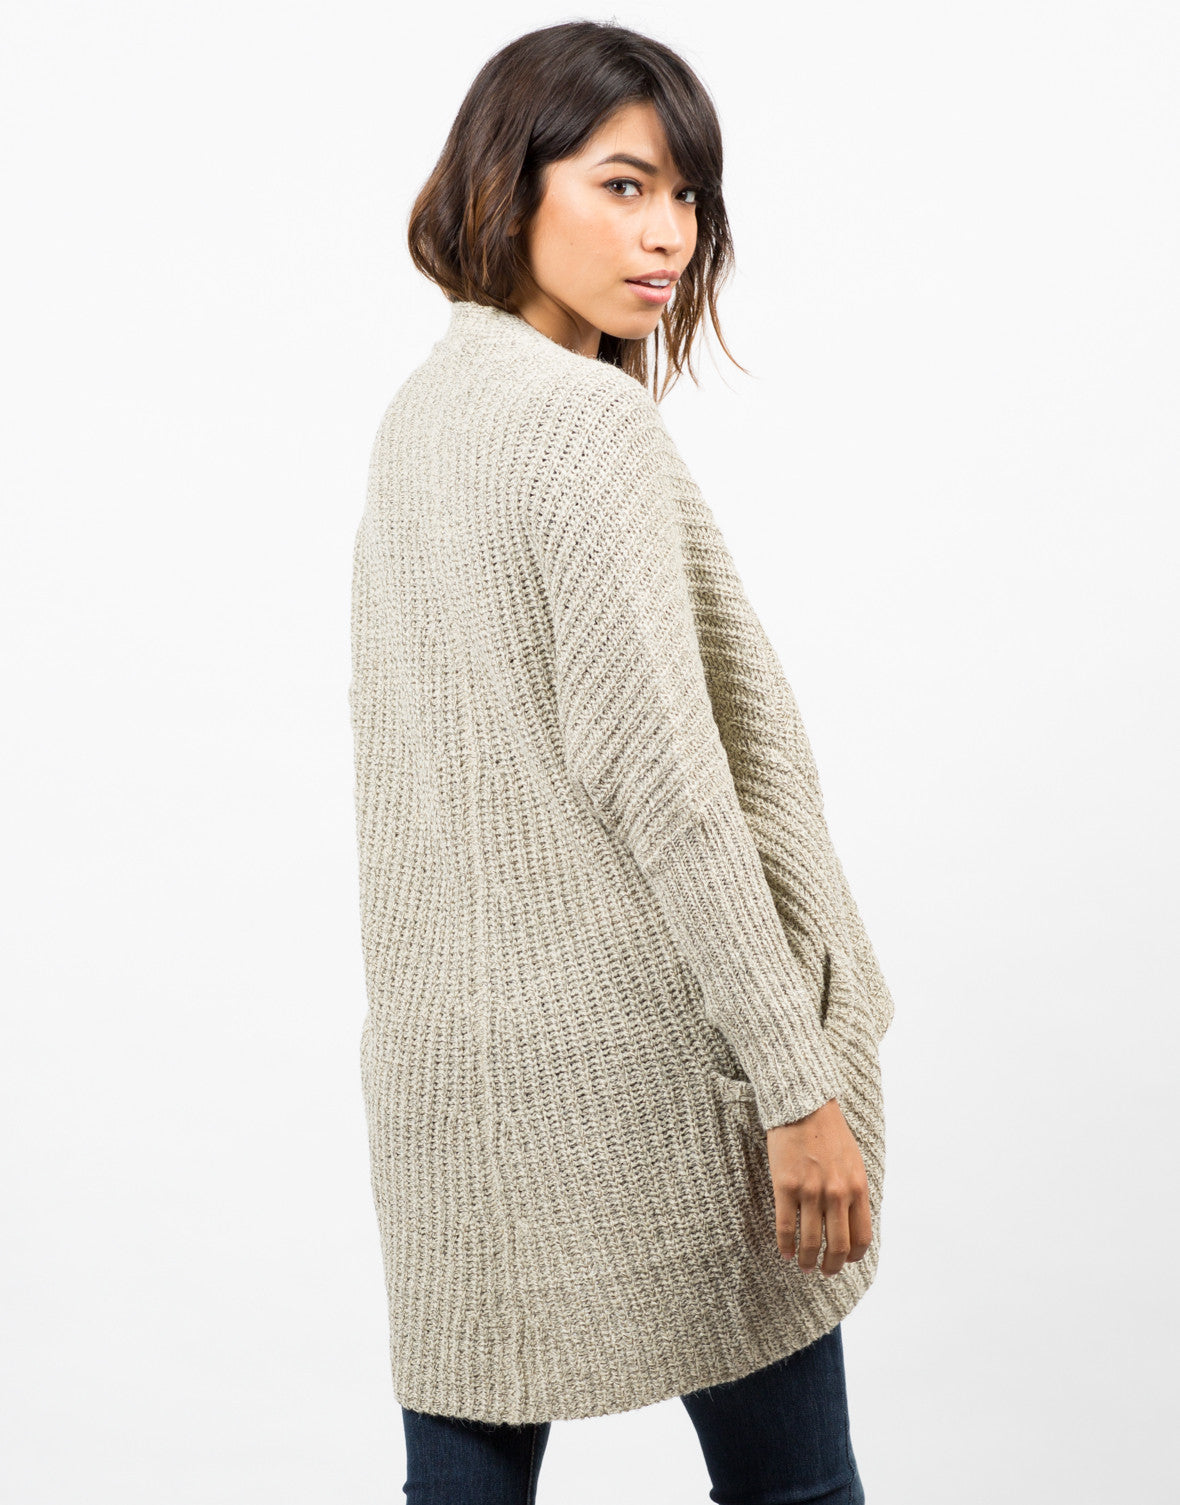 Back View of Marled Knit Cardigan